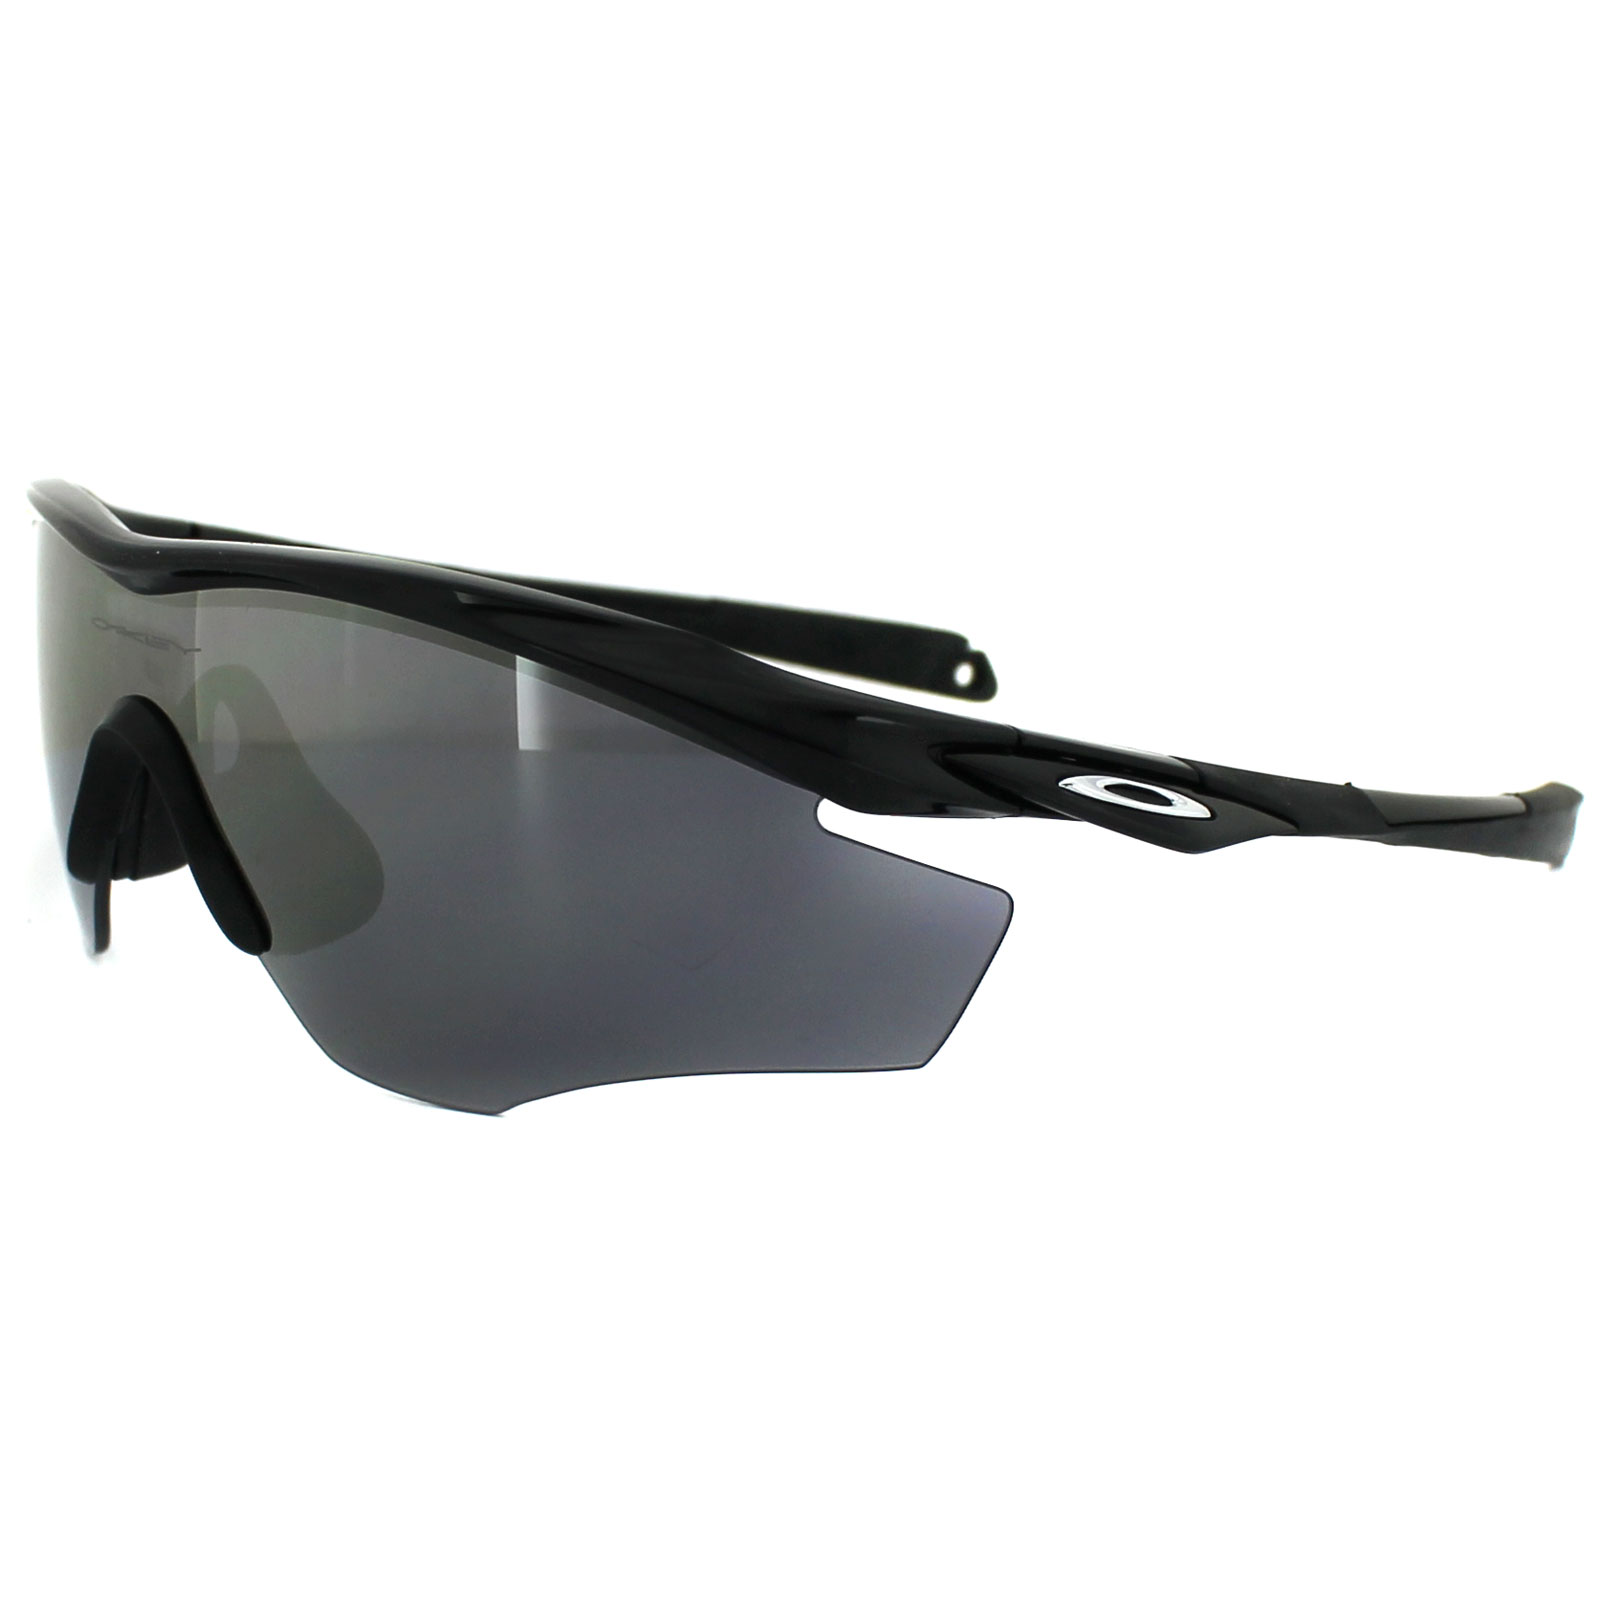 Cheap Oakley M2 Frame Sunglasses - Discounted Sunglasses